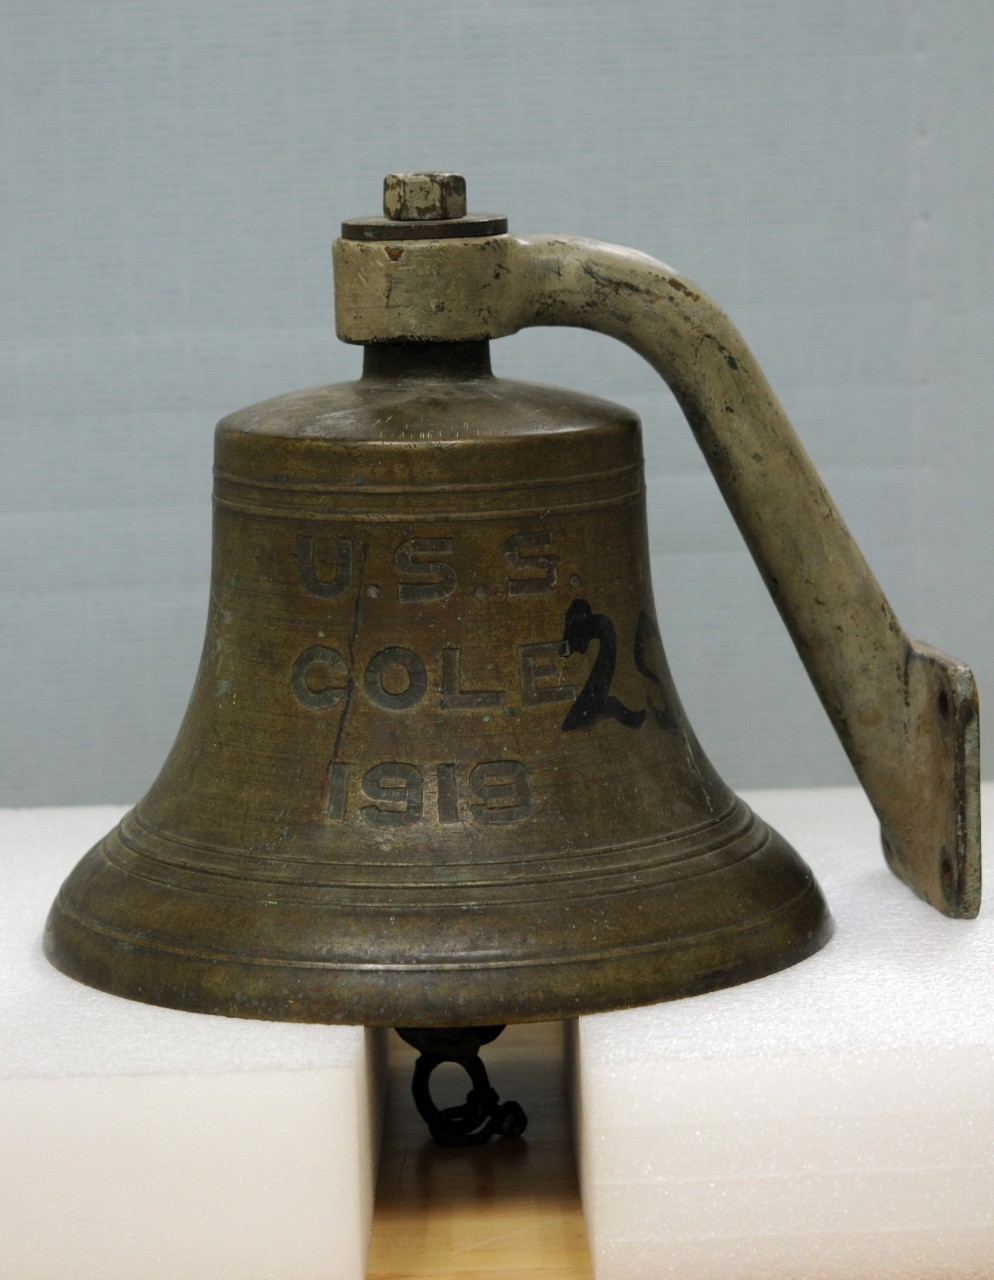 One brass ship bell with USS Cole 1919 engraved into the bell